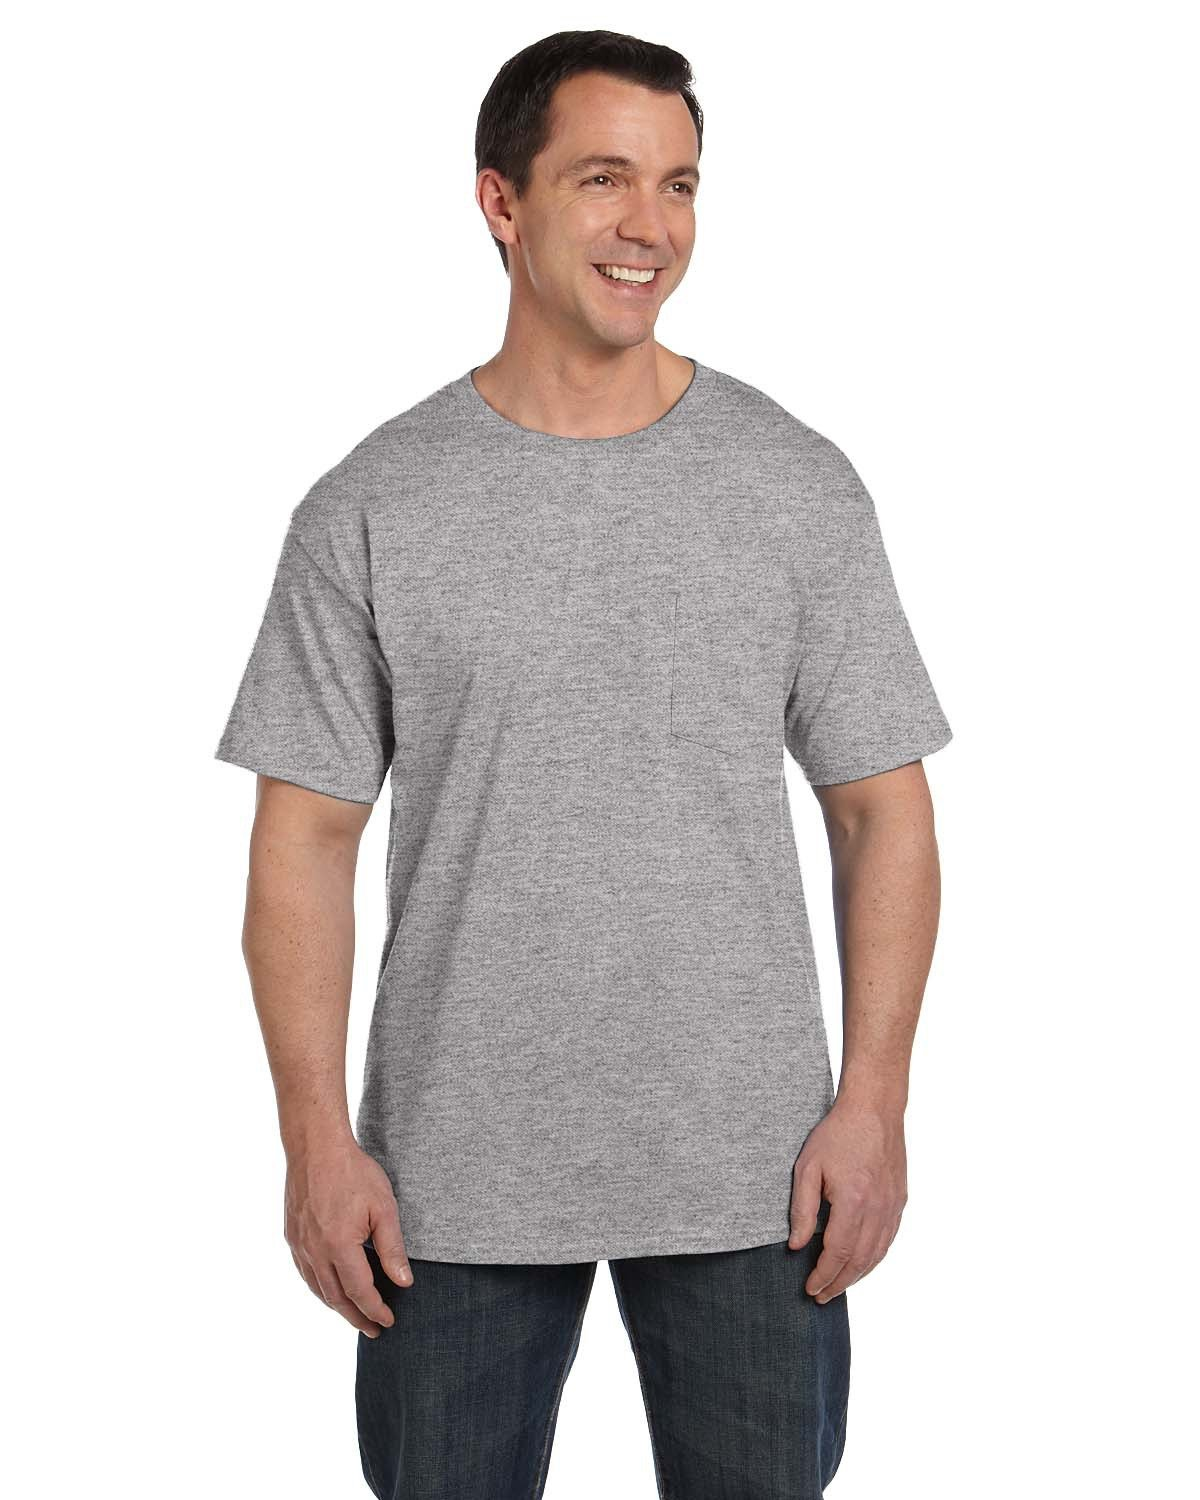 Hanes Adult Beefy-T® with Pocket LIGHT STEEL